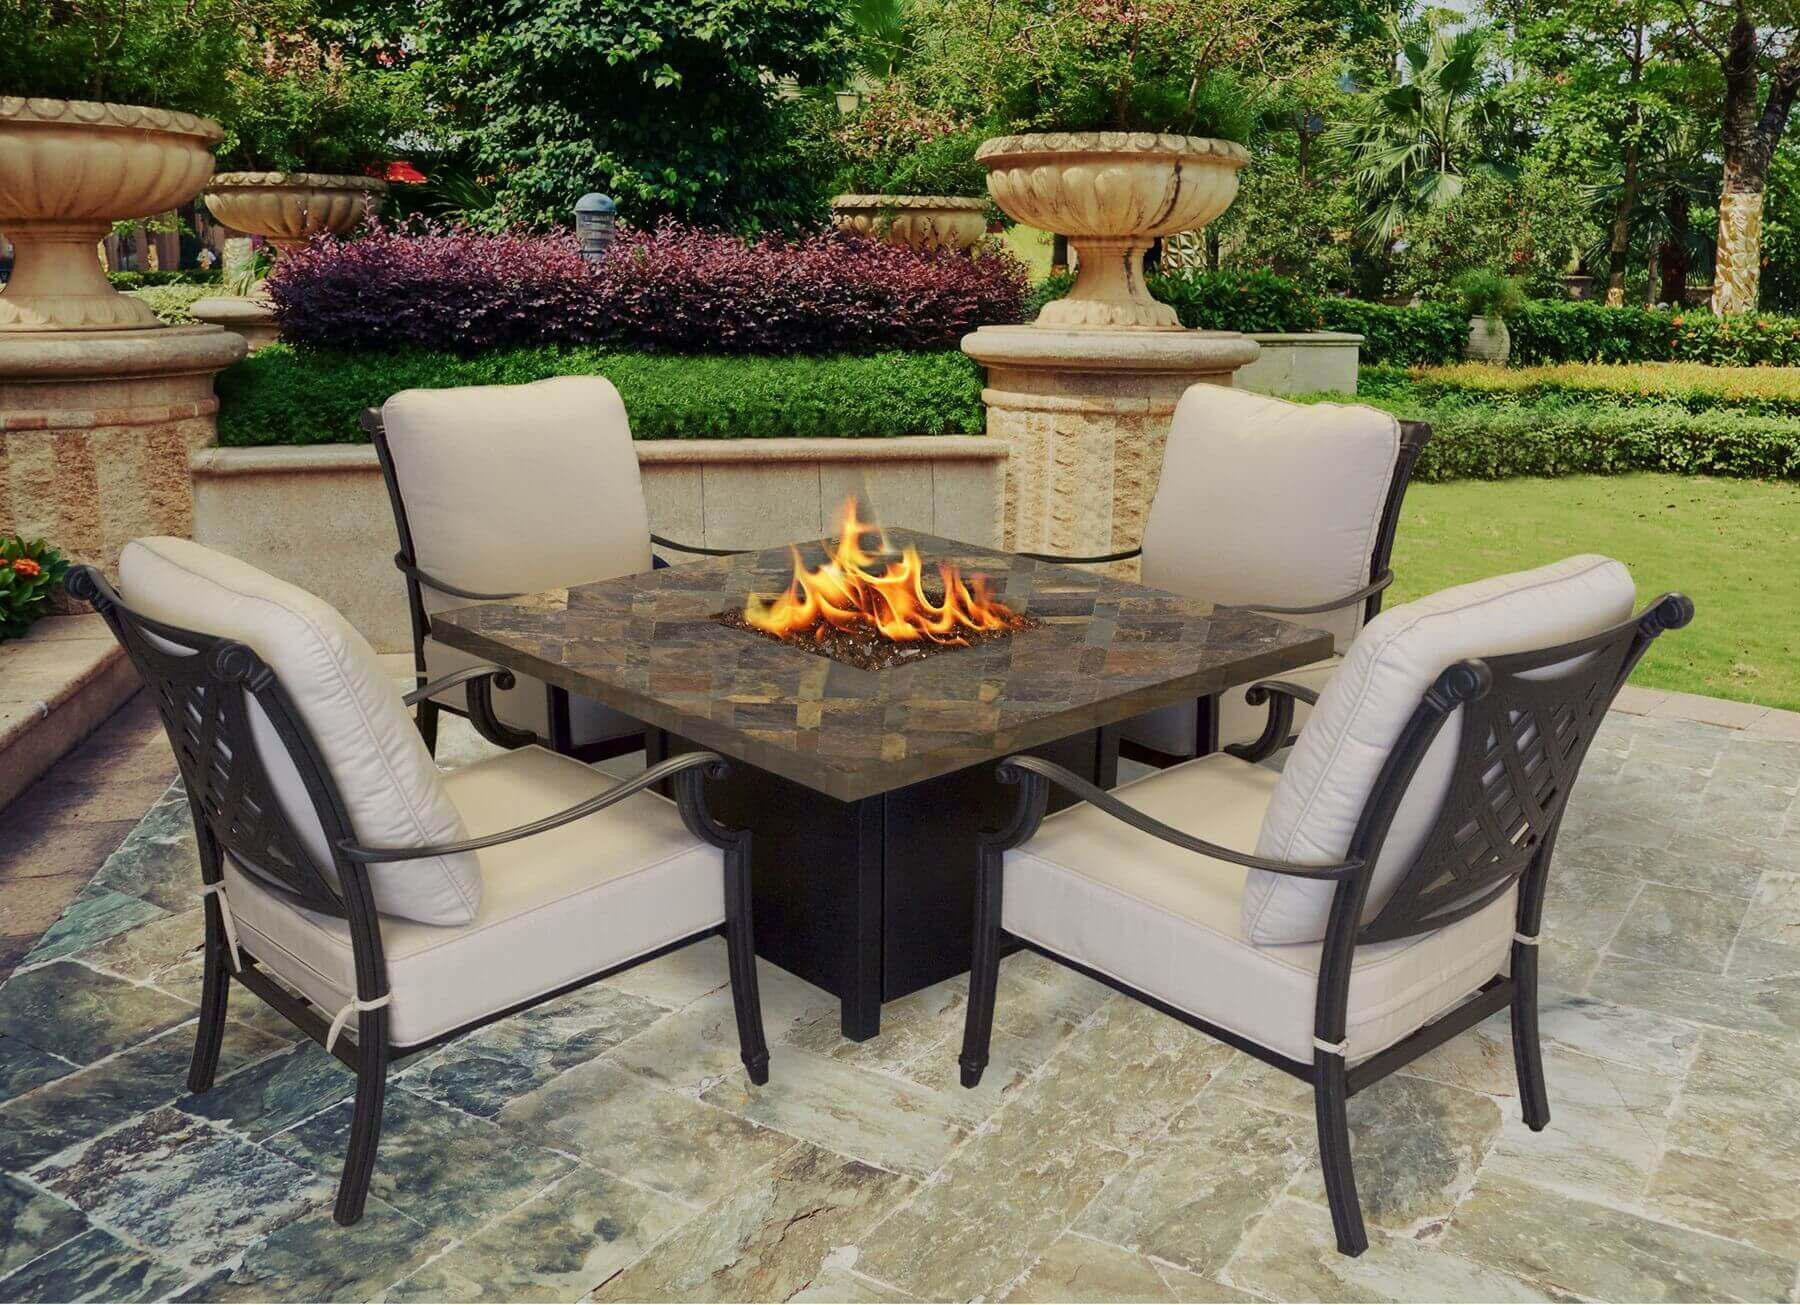 Best ideas about Patio Furniture Clearance Costco . Save or Pin Patio Furniture Clearance Costco – Outdoor Decorations Now.